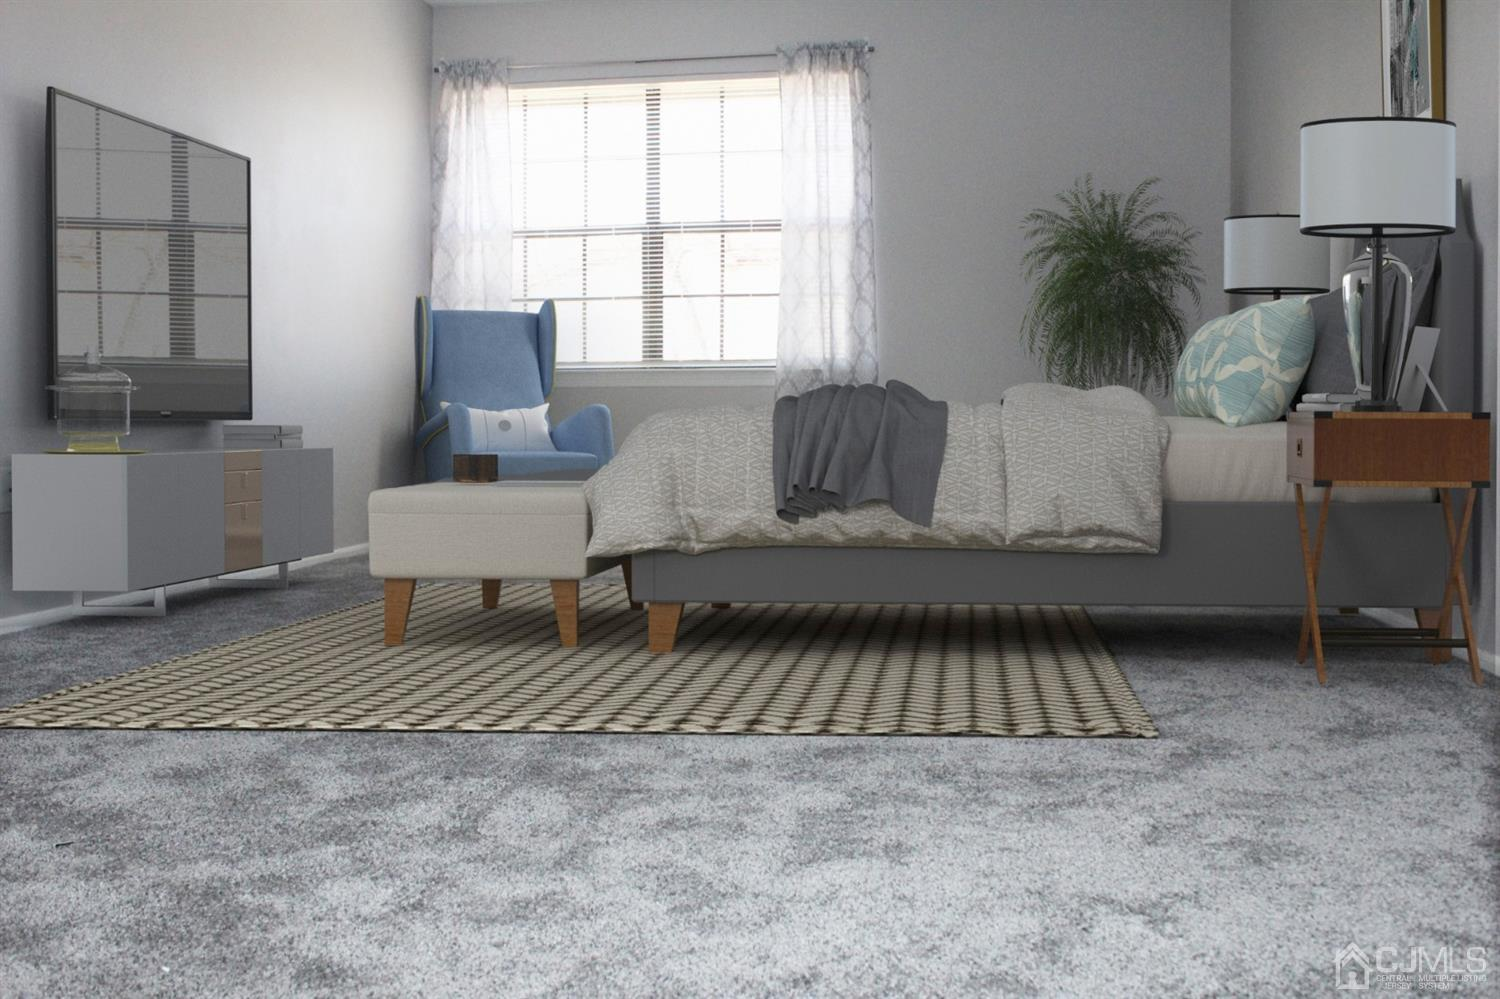 VIRTUAL STAGED WITH FURNITURE IN MASTER BEDROOM.